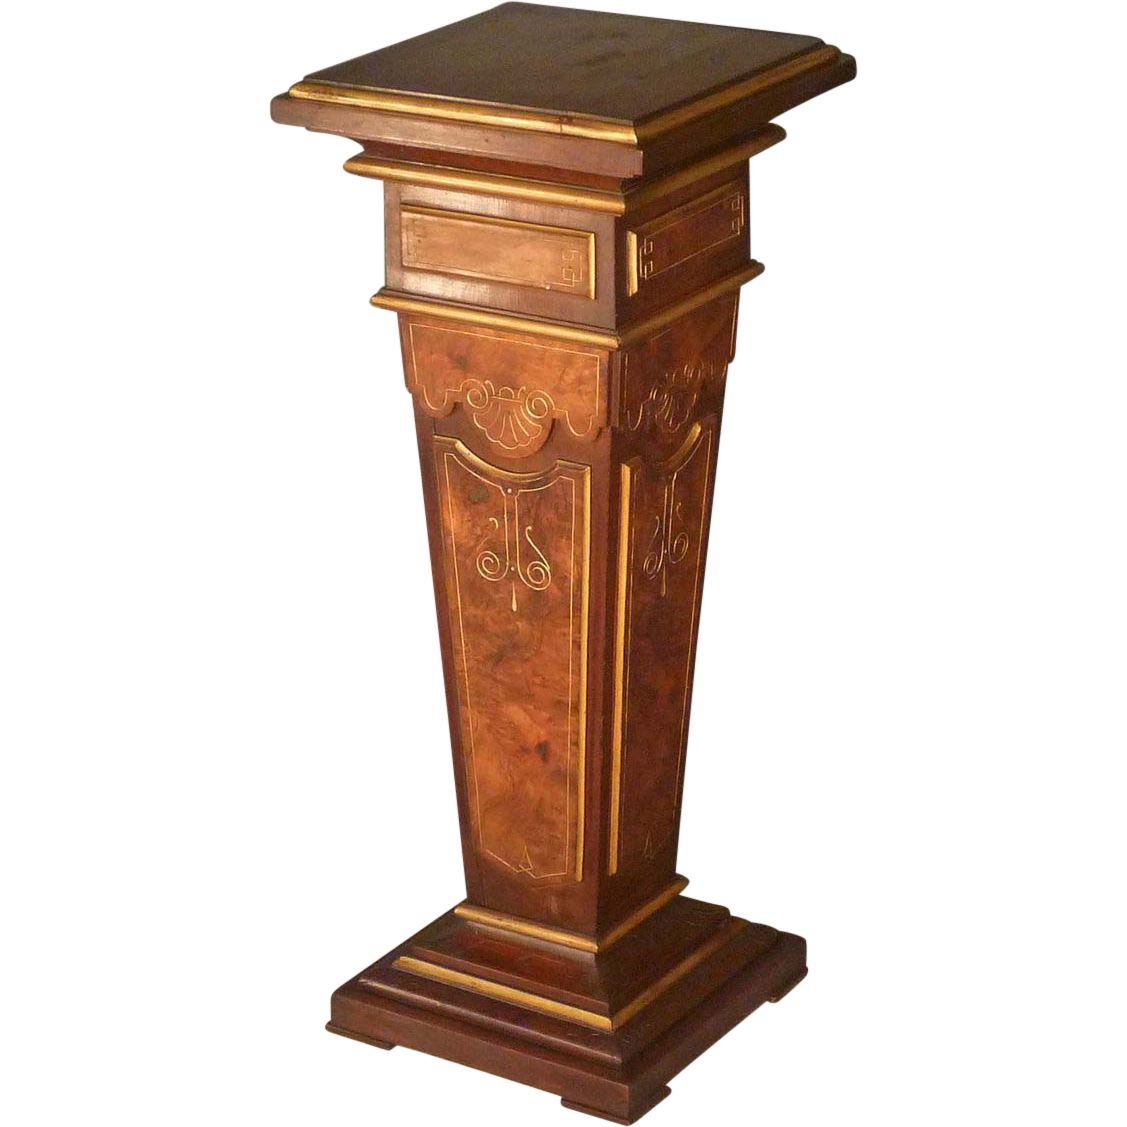 Victorian Renaissance Revival Pedestal on Victorian Bedroom Furniture